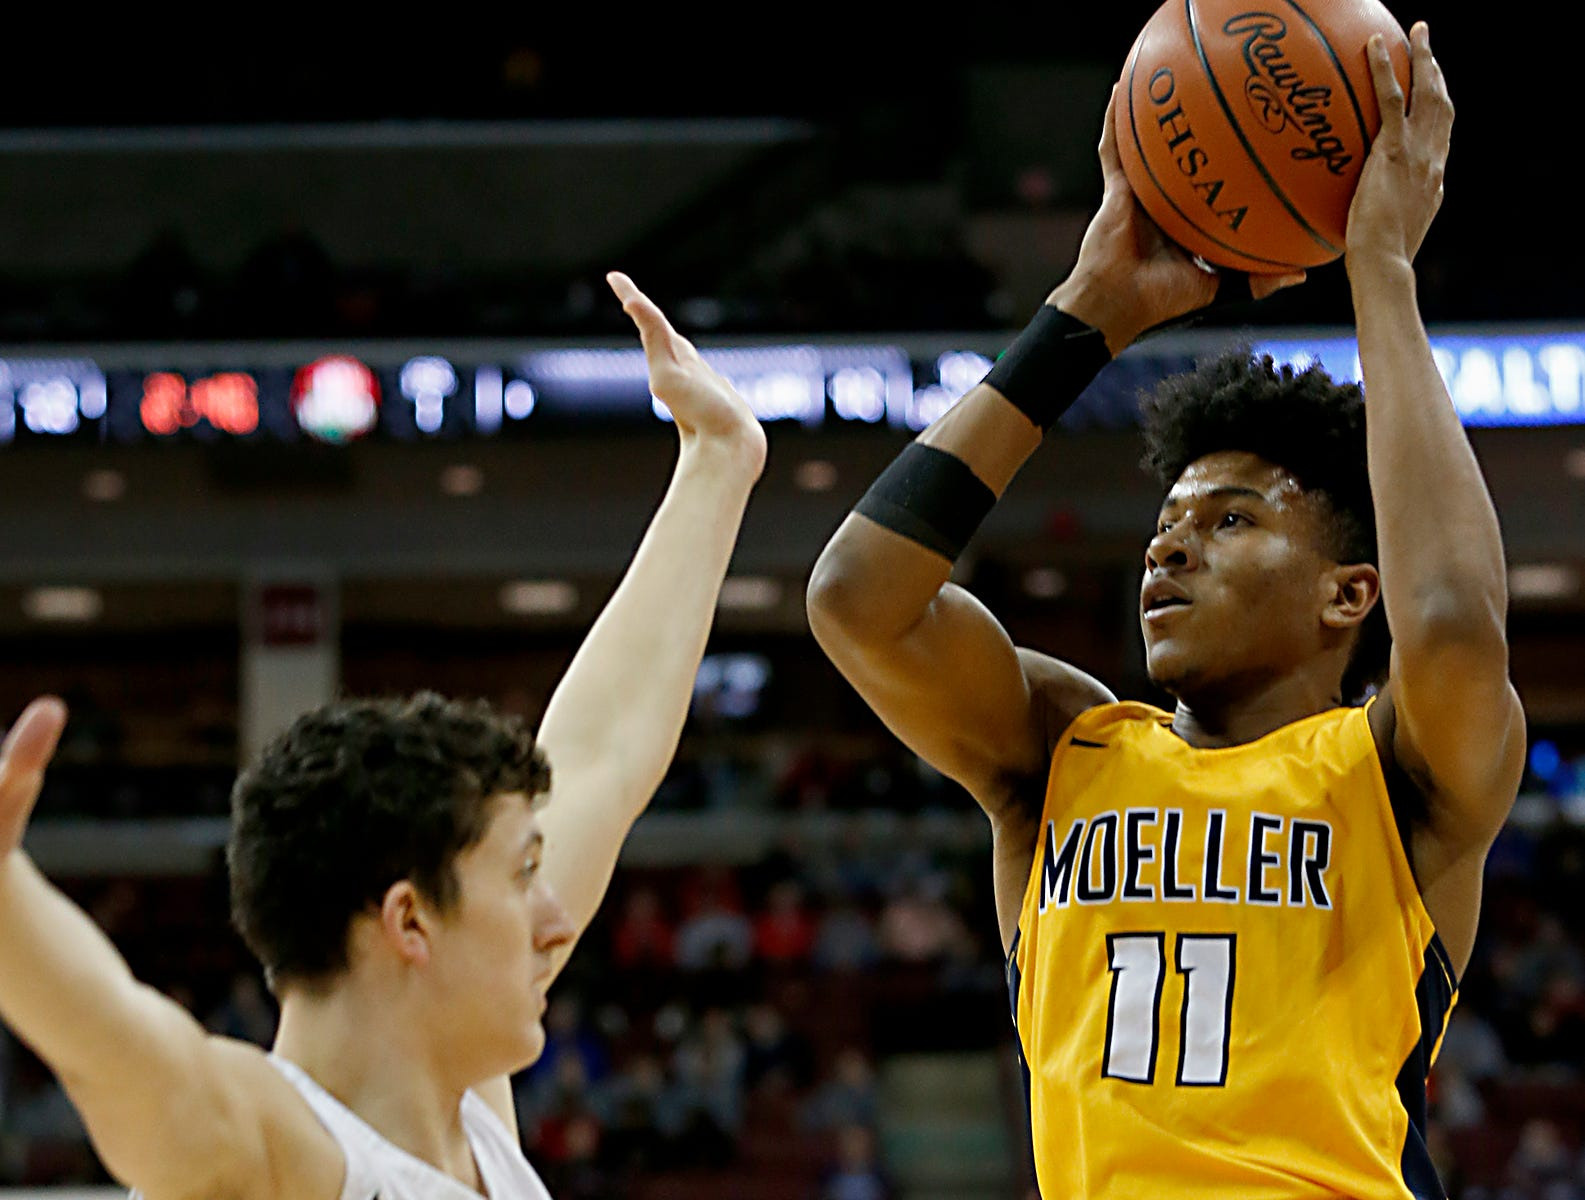 Moeller guard Miles McBride goes to the basket against St. Edward guard Josh Ogle during their Division I semifinal at the Schottenstein Center in Columbus Friday, March 22, 2019.